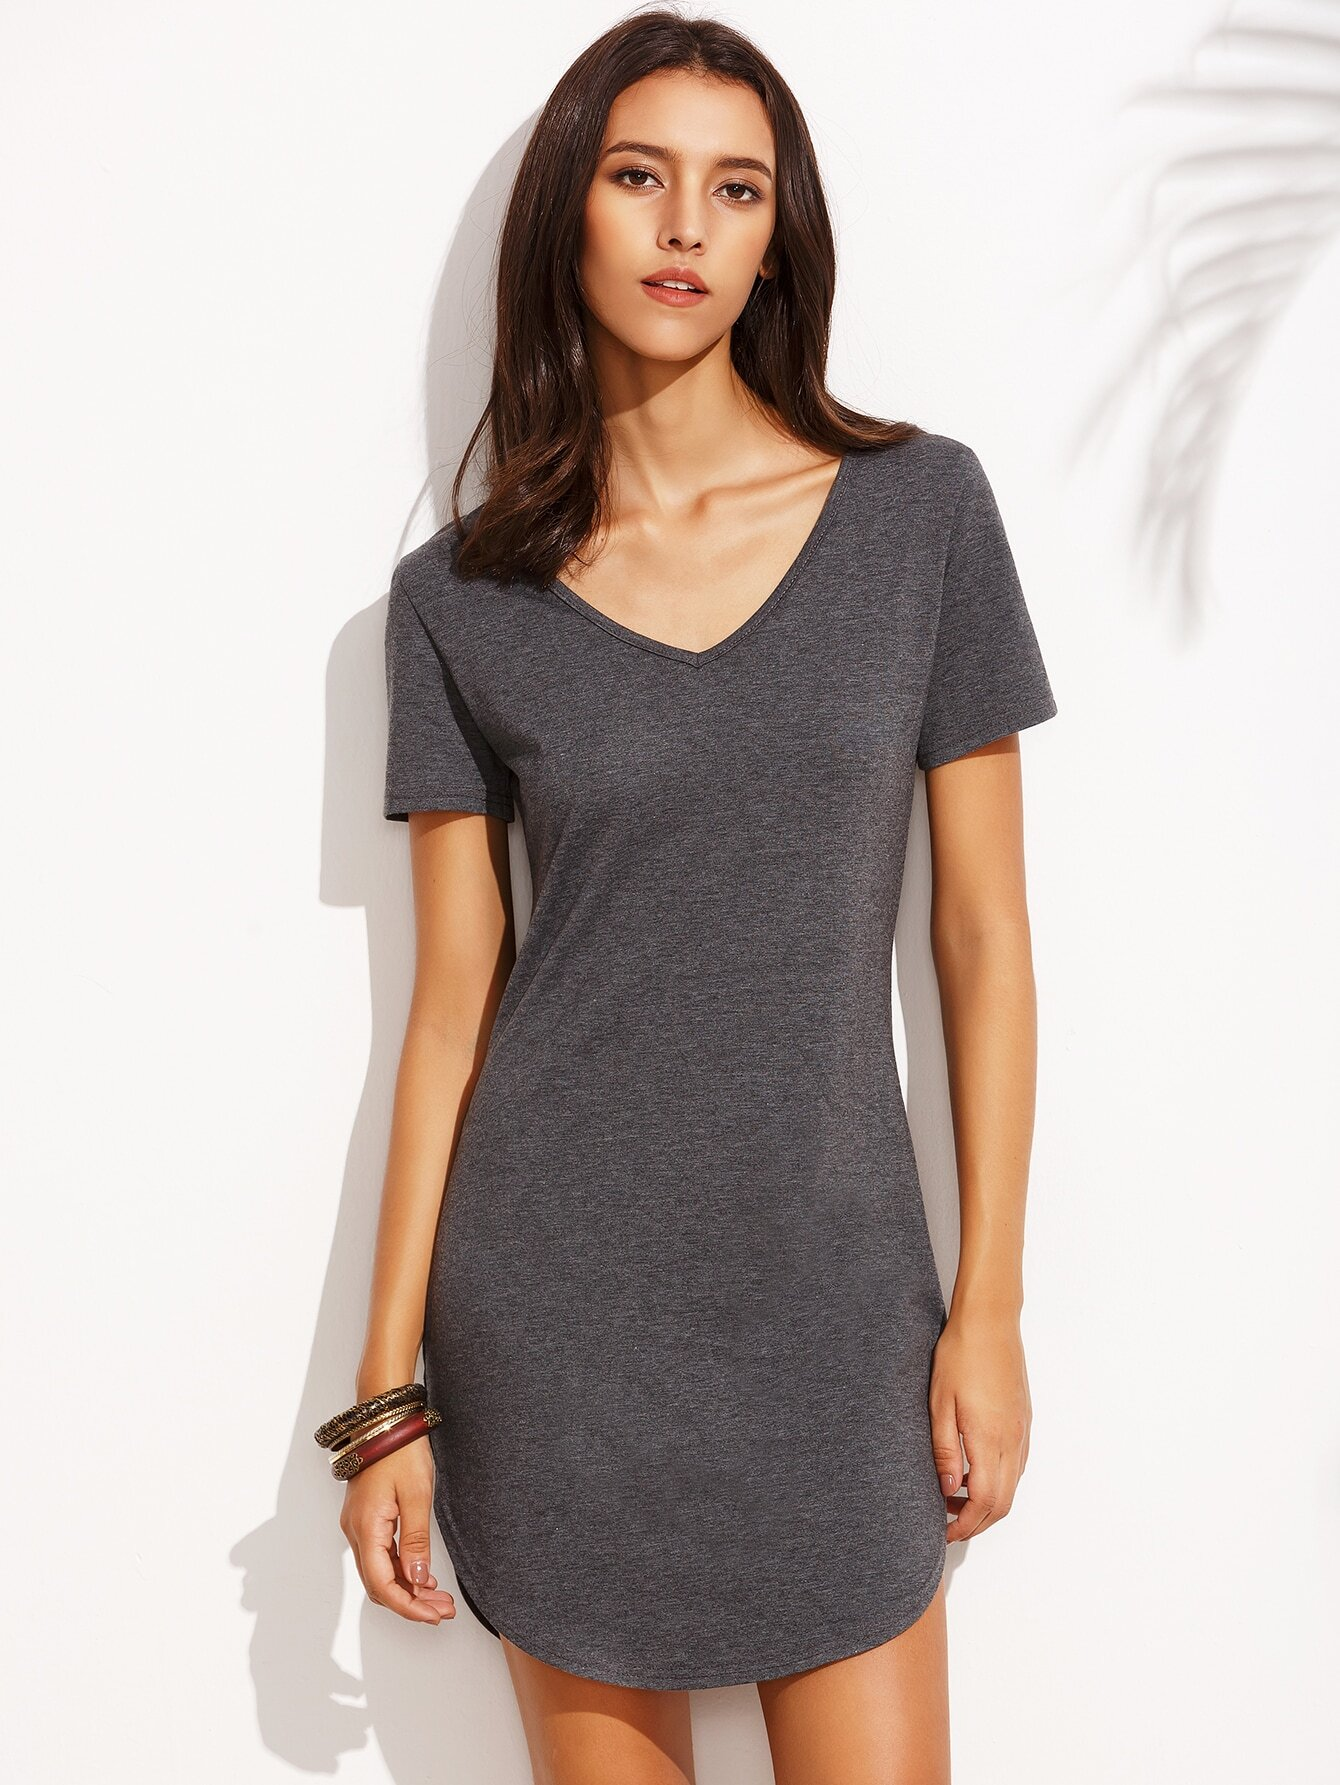 4b2f90a7106 Heather Grey Curved Hem T-shirt Dress EmmaCloth-Women Fast Fashion ...